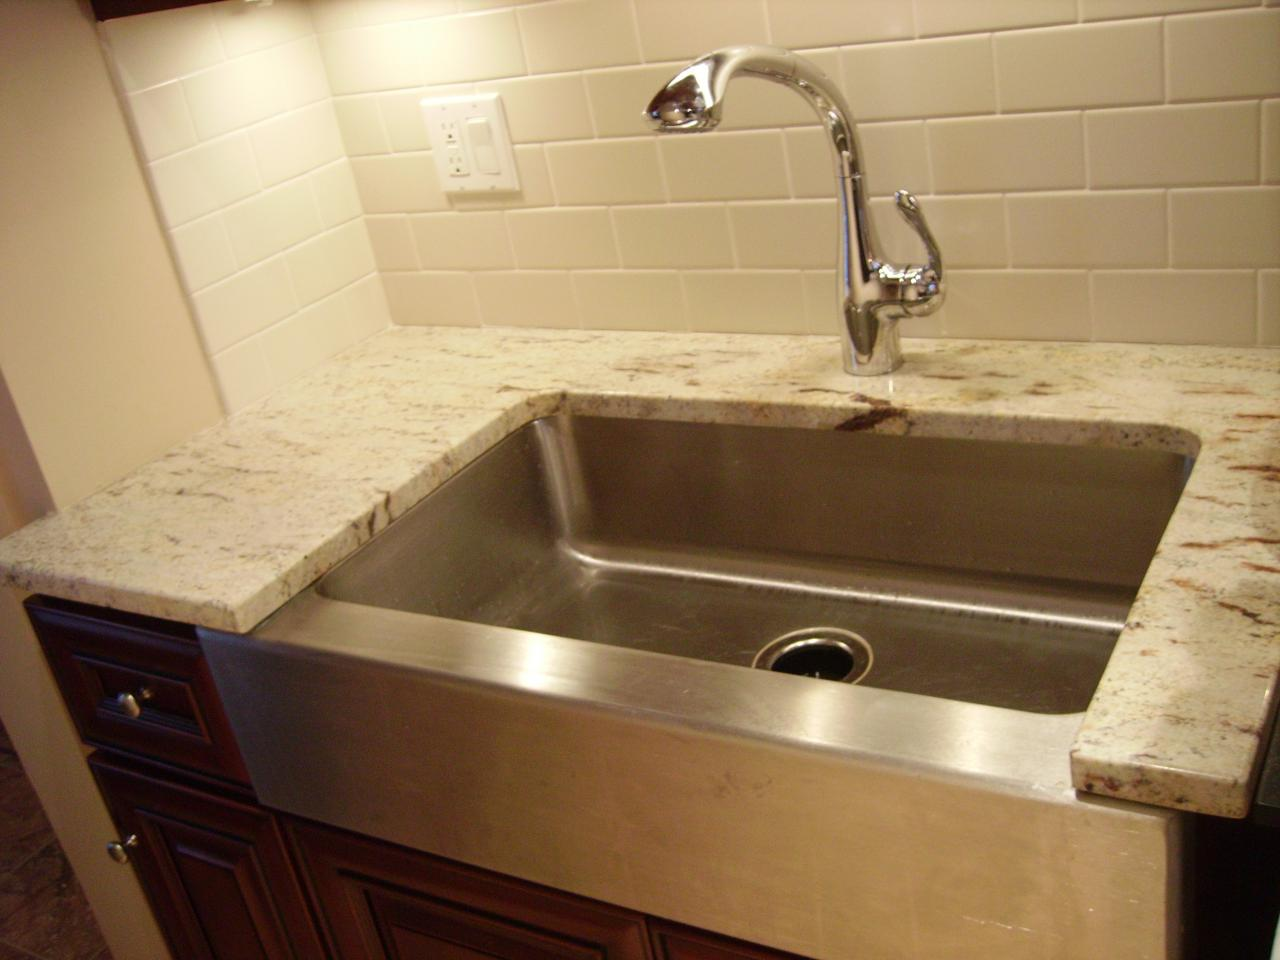 kitchen sinks for granite countertops. Ivoire Tane Pantry Kitchen With Farm Sink Sinks For Granite Countertops